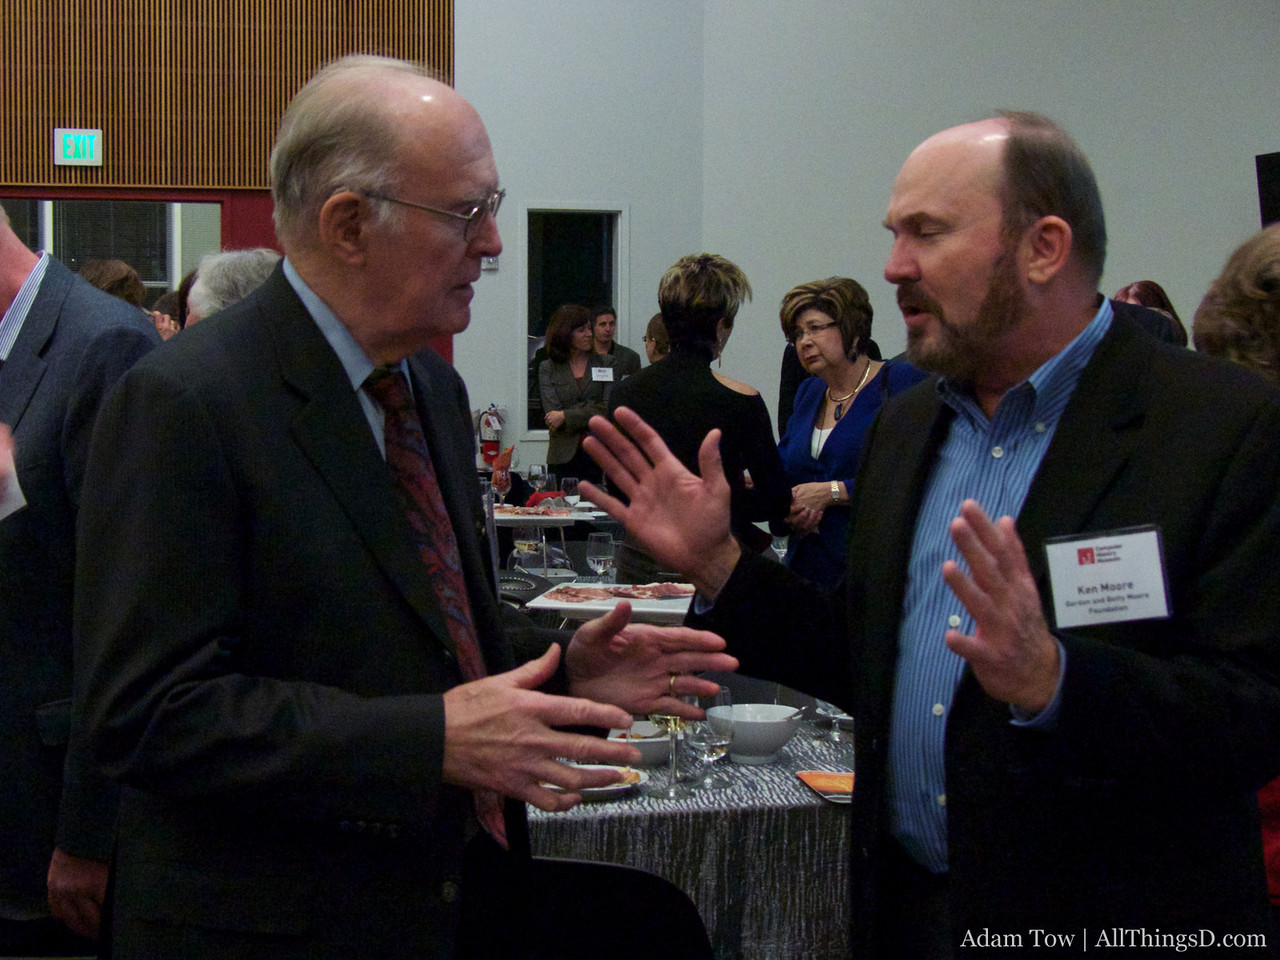 Gordon Moore, founder of Intel, speaks with his son, Ken Moore following the event.